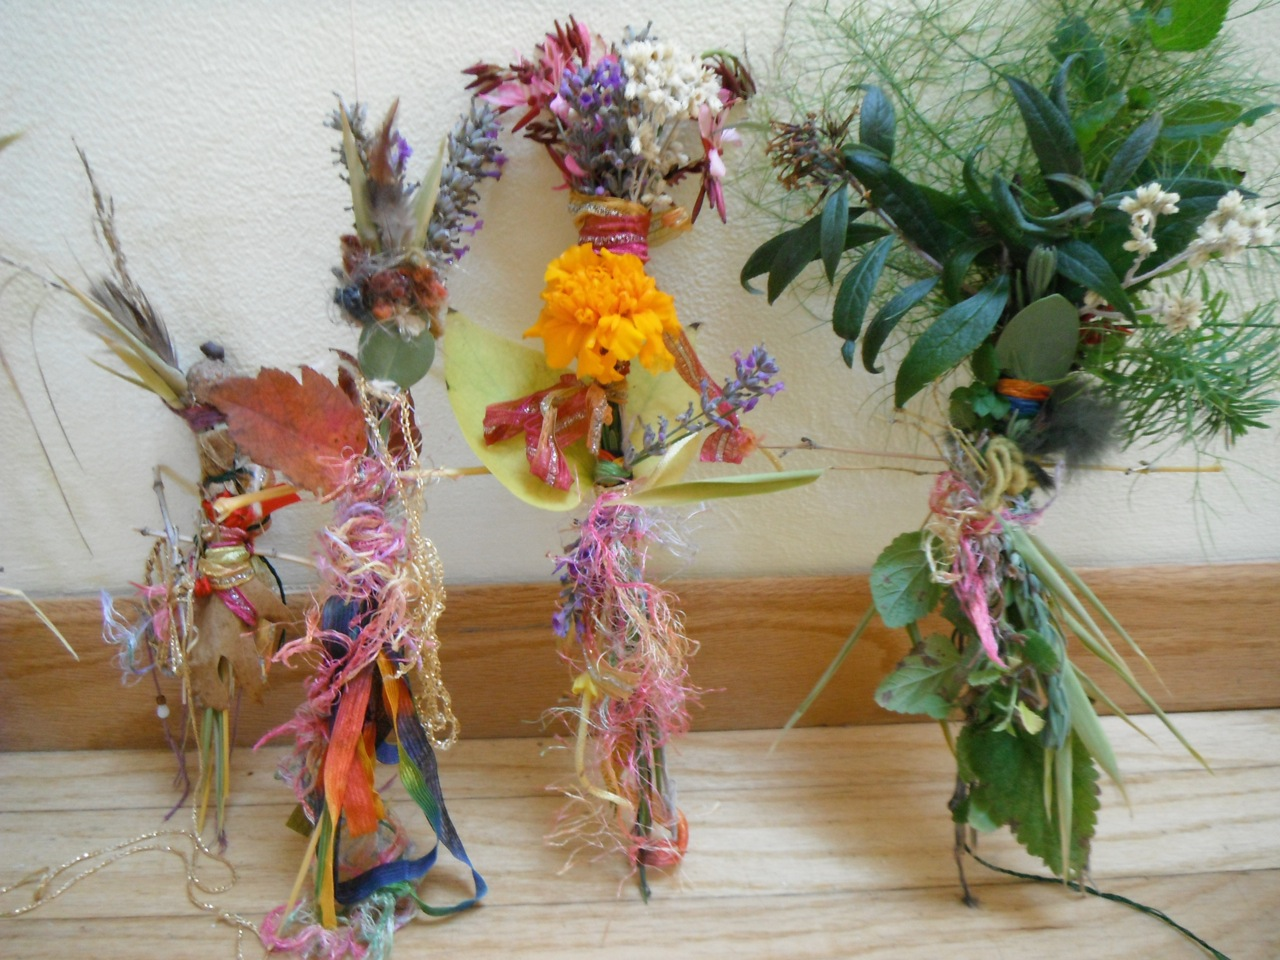 Flower Fairy Dolls created from flowers and yarn